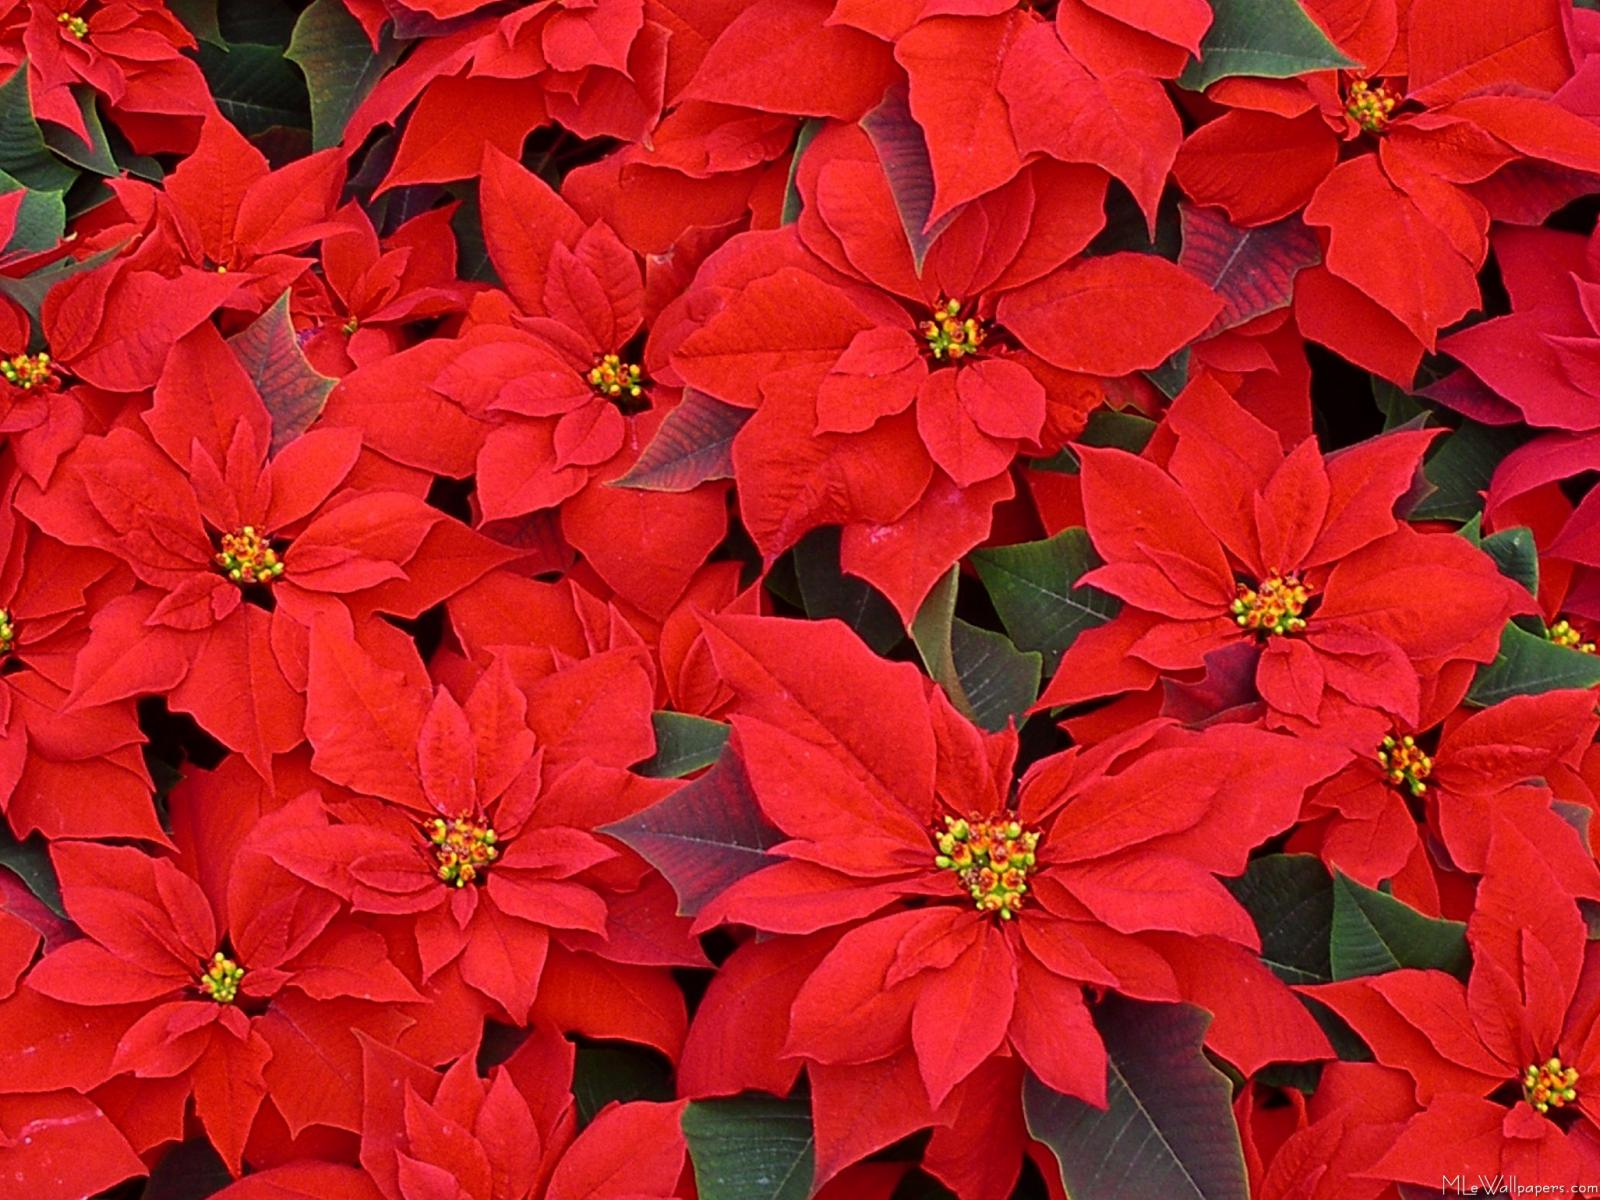 or red poinsettia - photo #1